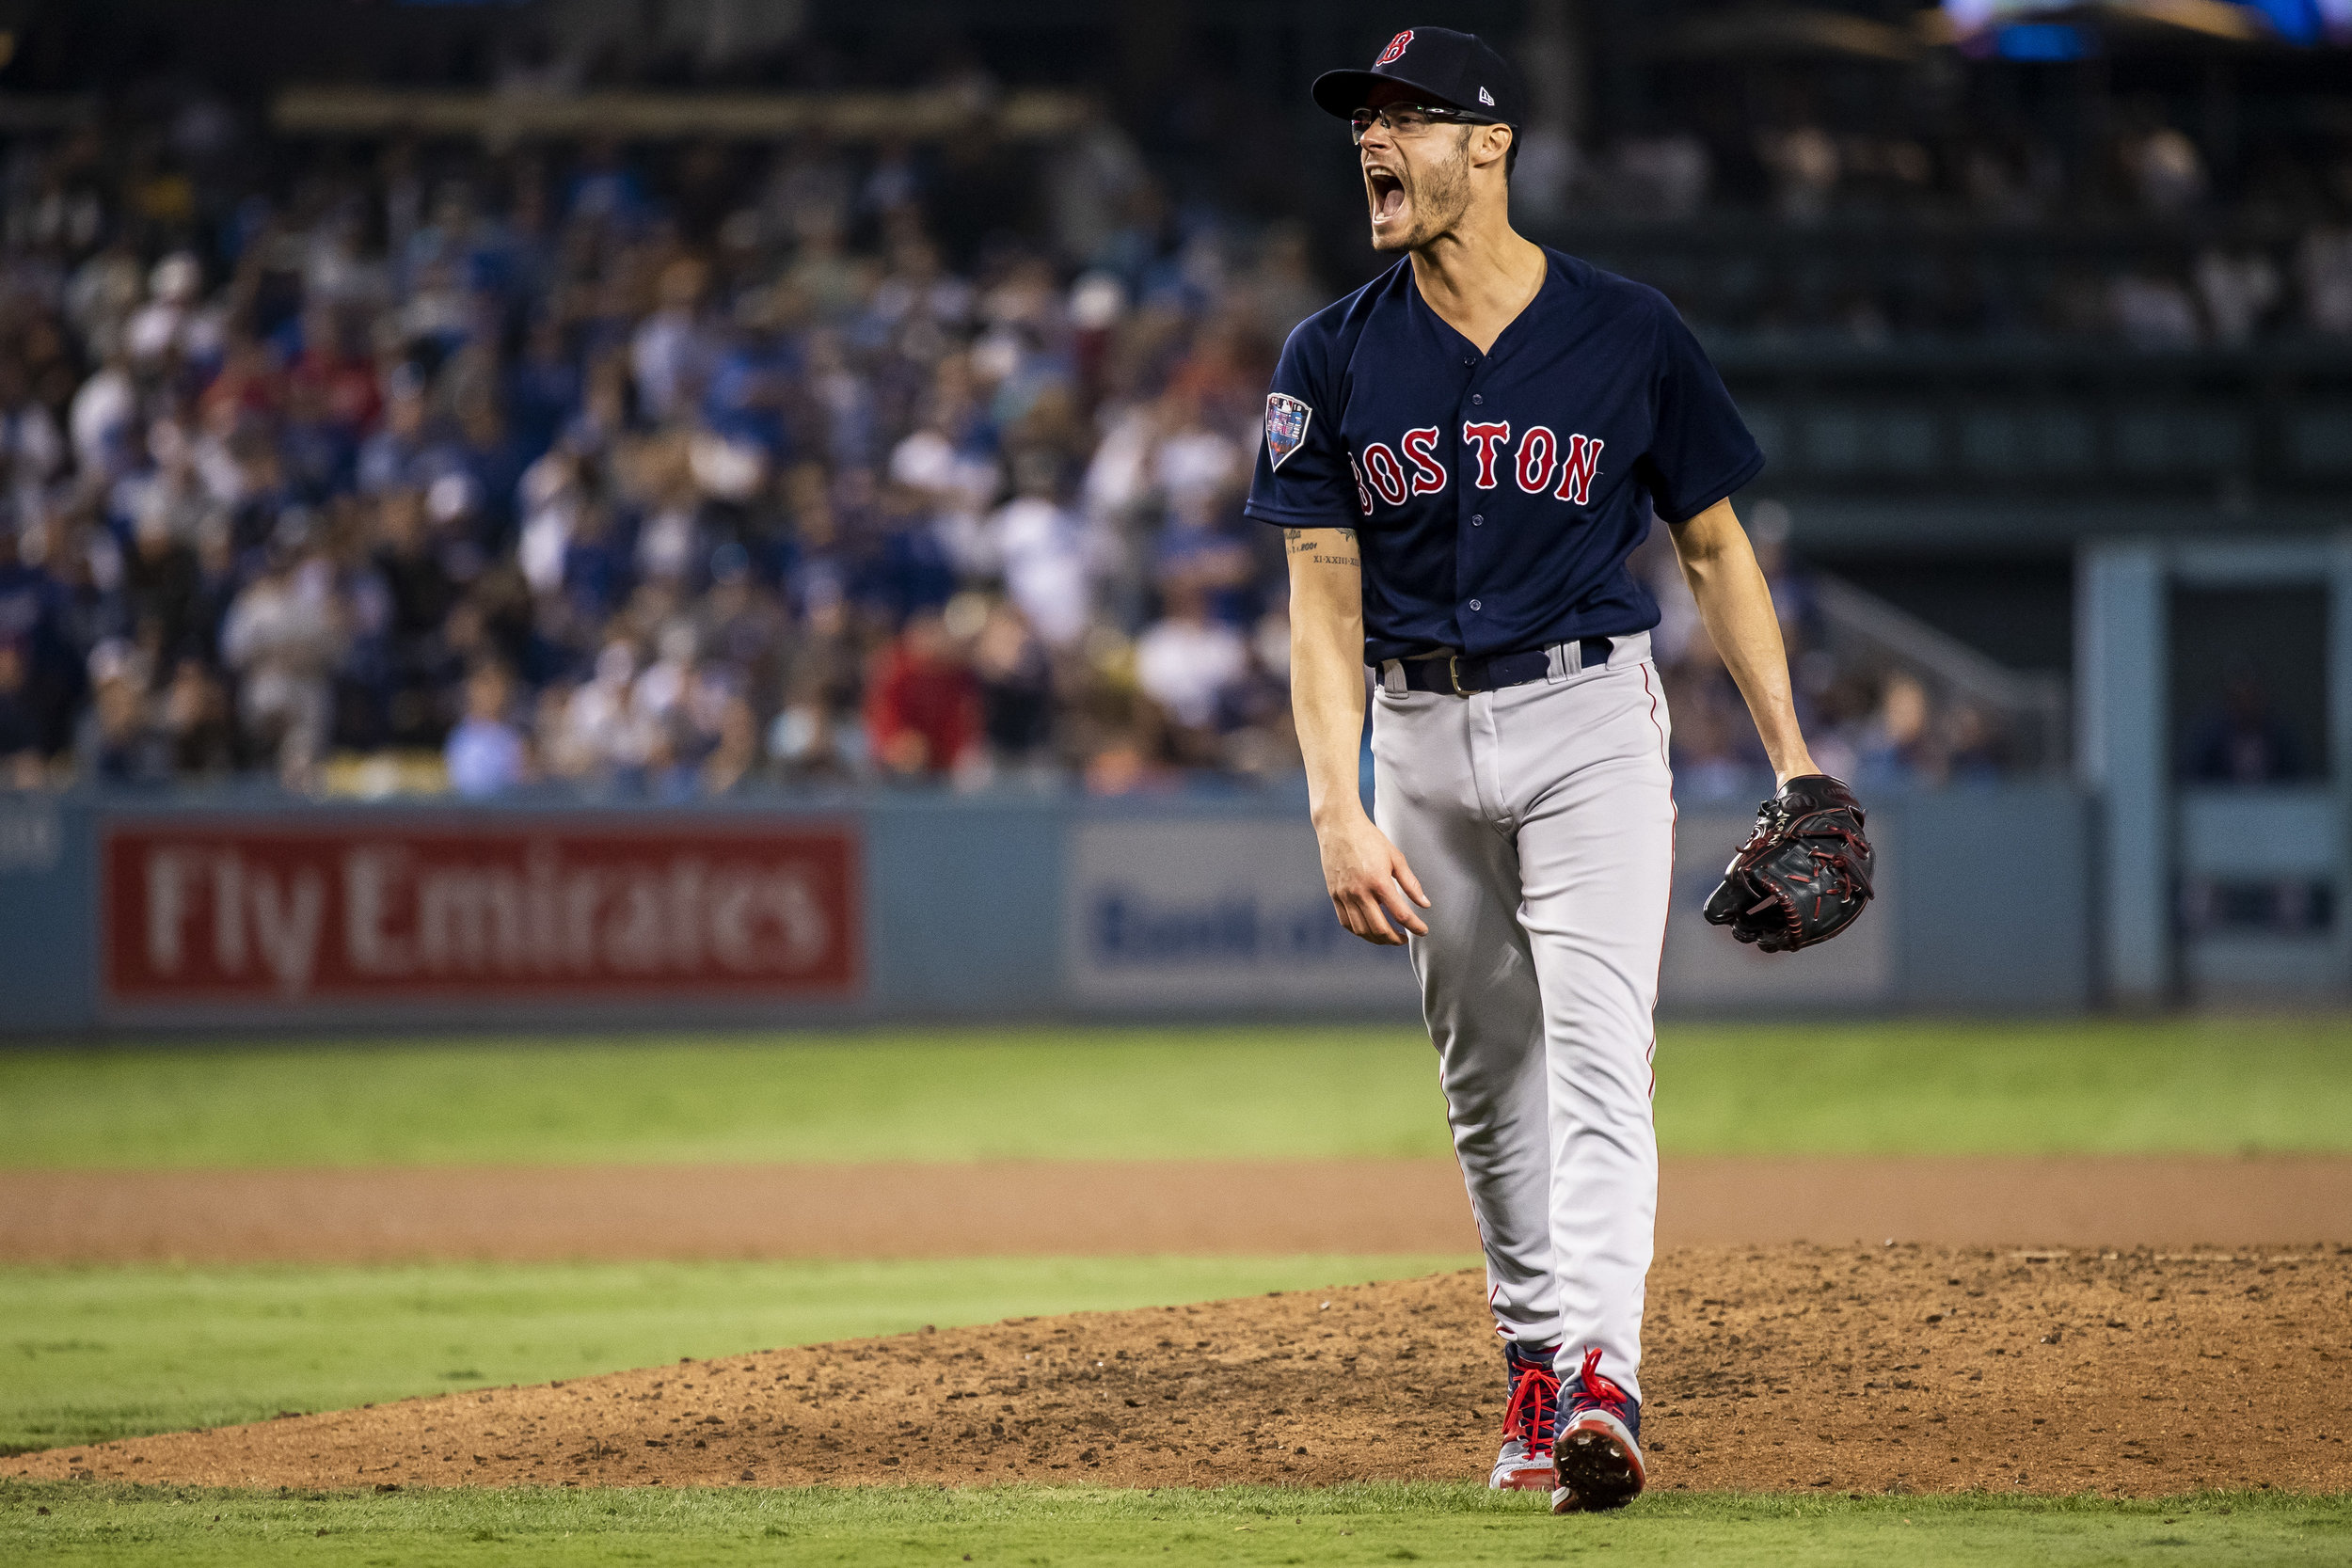 October 28, 2018, Los Angeles, Ca: Boston Red Sox pitcher Joe Kelly reacts to ending the inning as the Boston Red Sox face the Los Angeles Dodgers in Game 5 of the World Series at Dodger Stadium in Los Angeles, California on Saturday, October 28, 2018. (Photo by Matthew Thomas/Boston Red Sox)